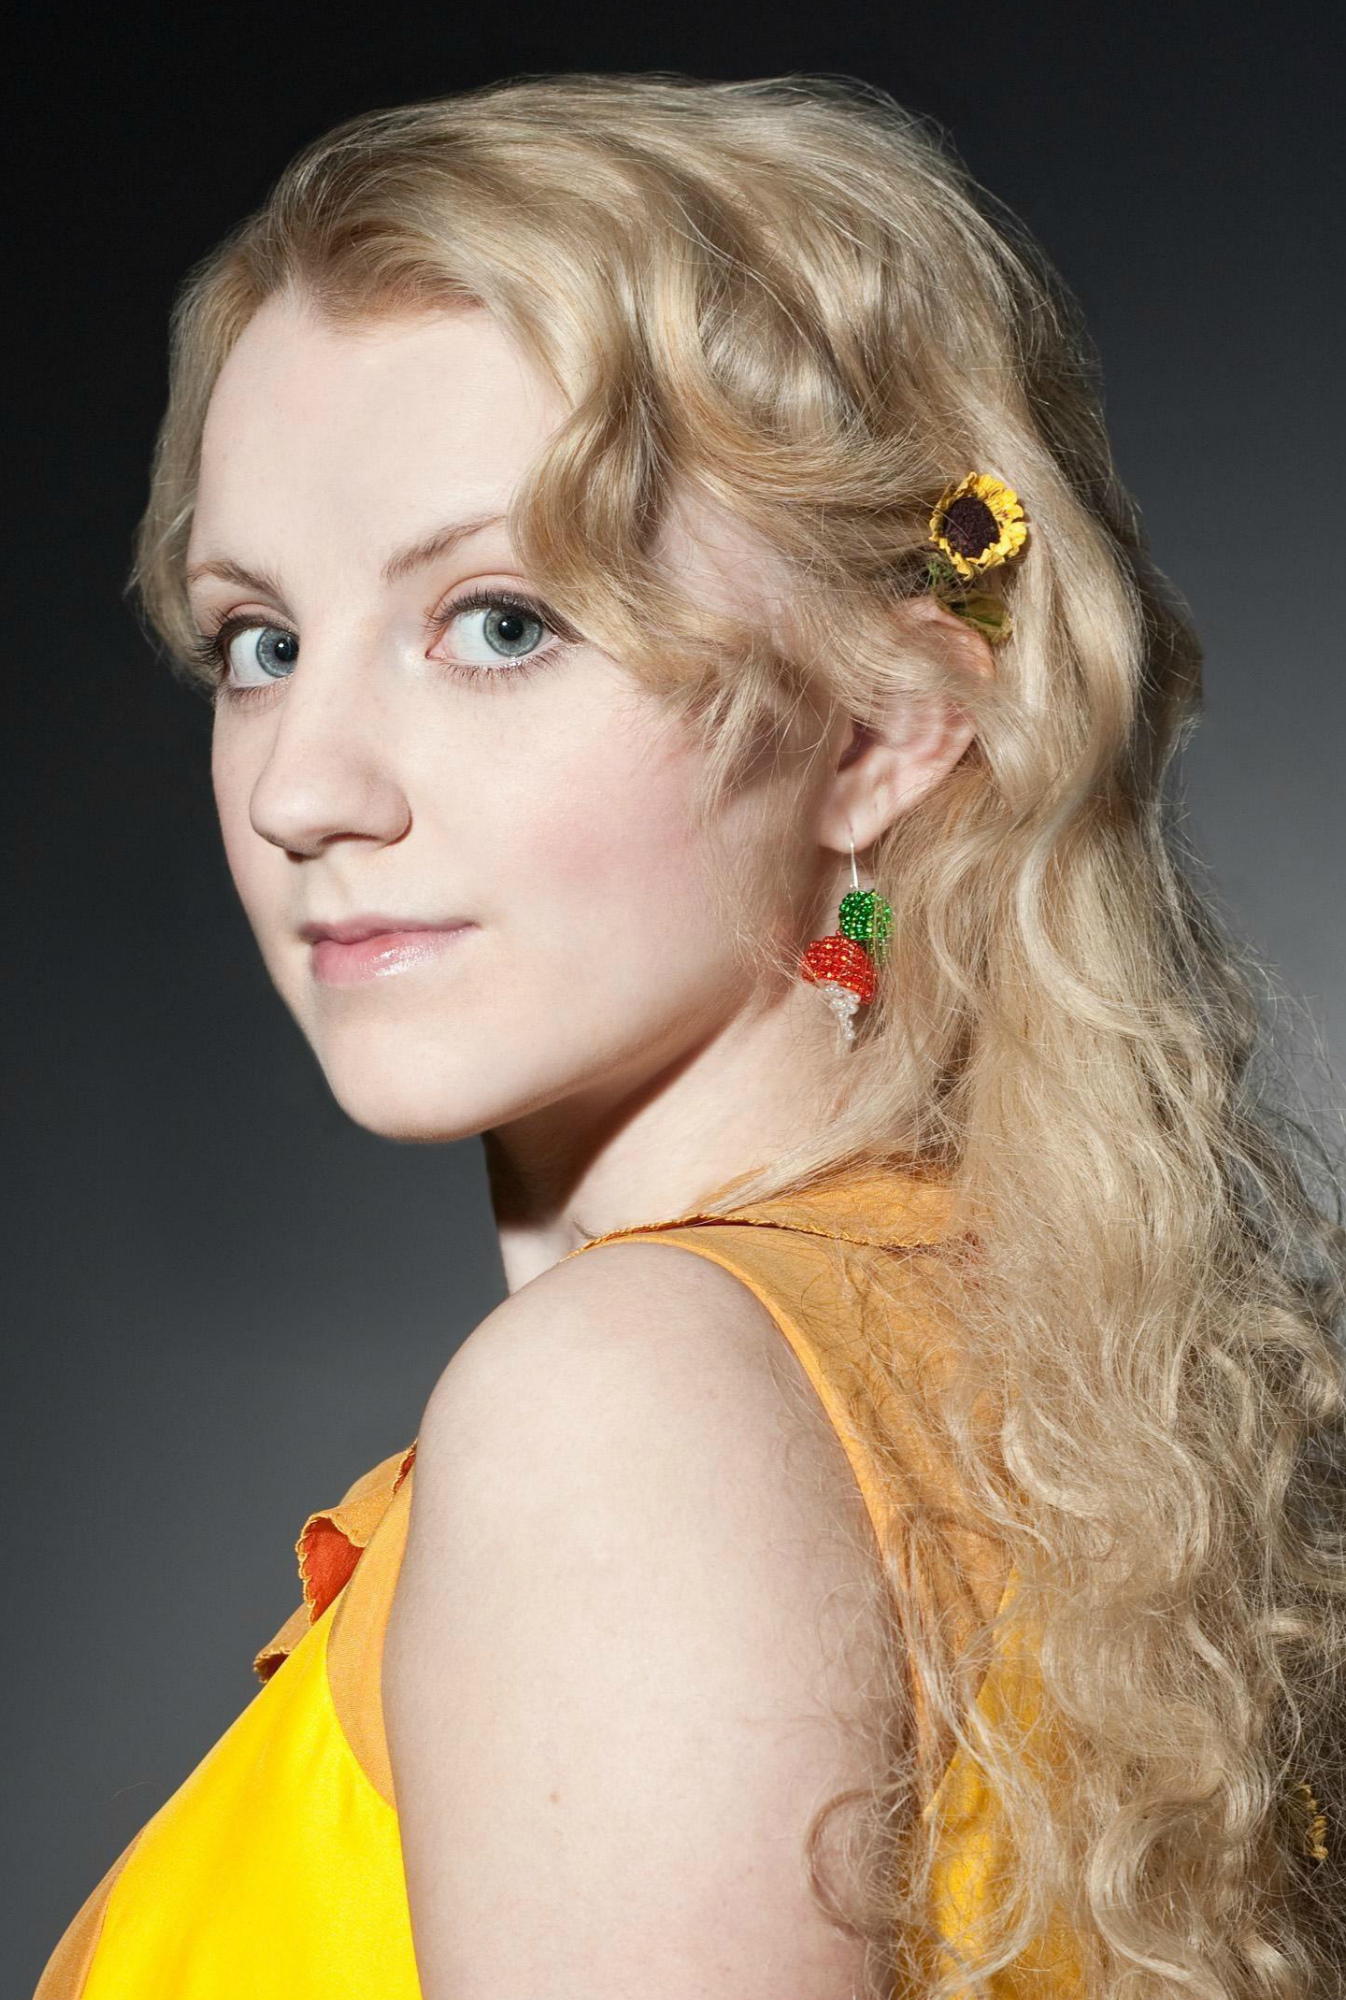 woop woop love luna luna lovegood